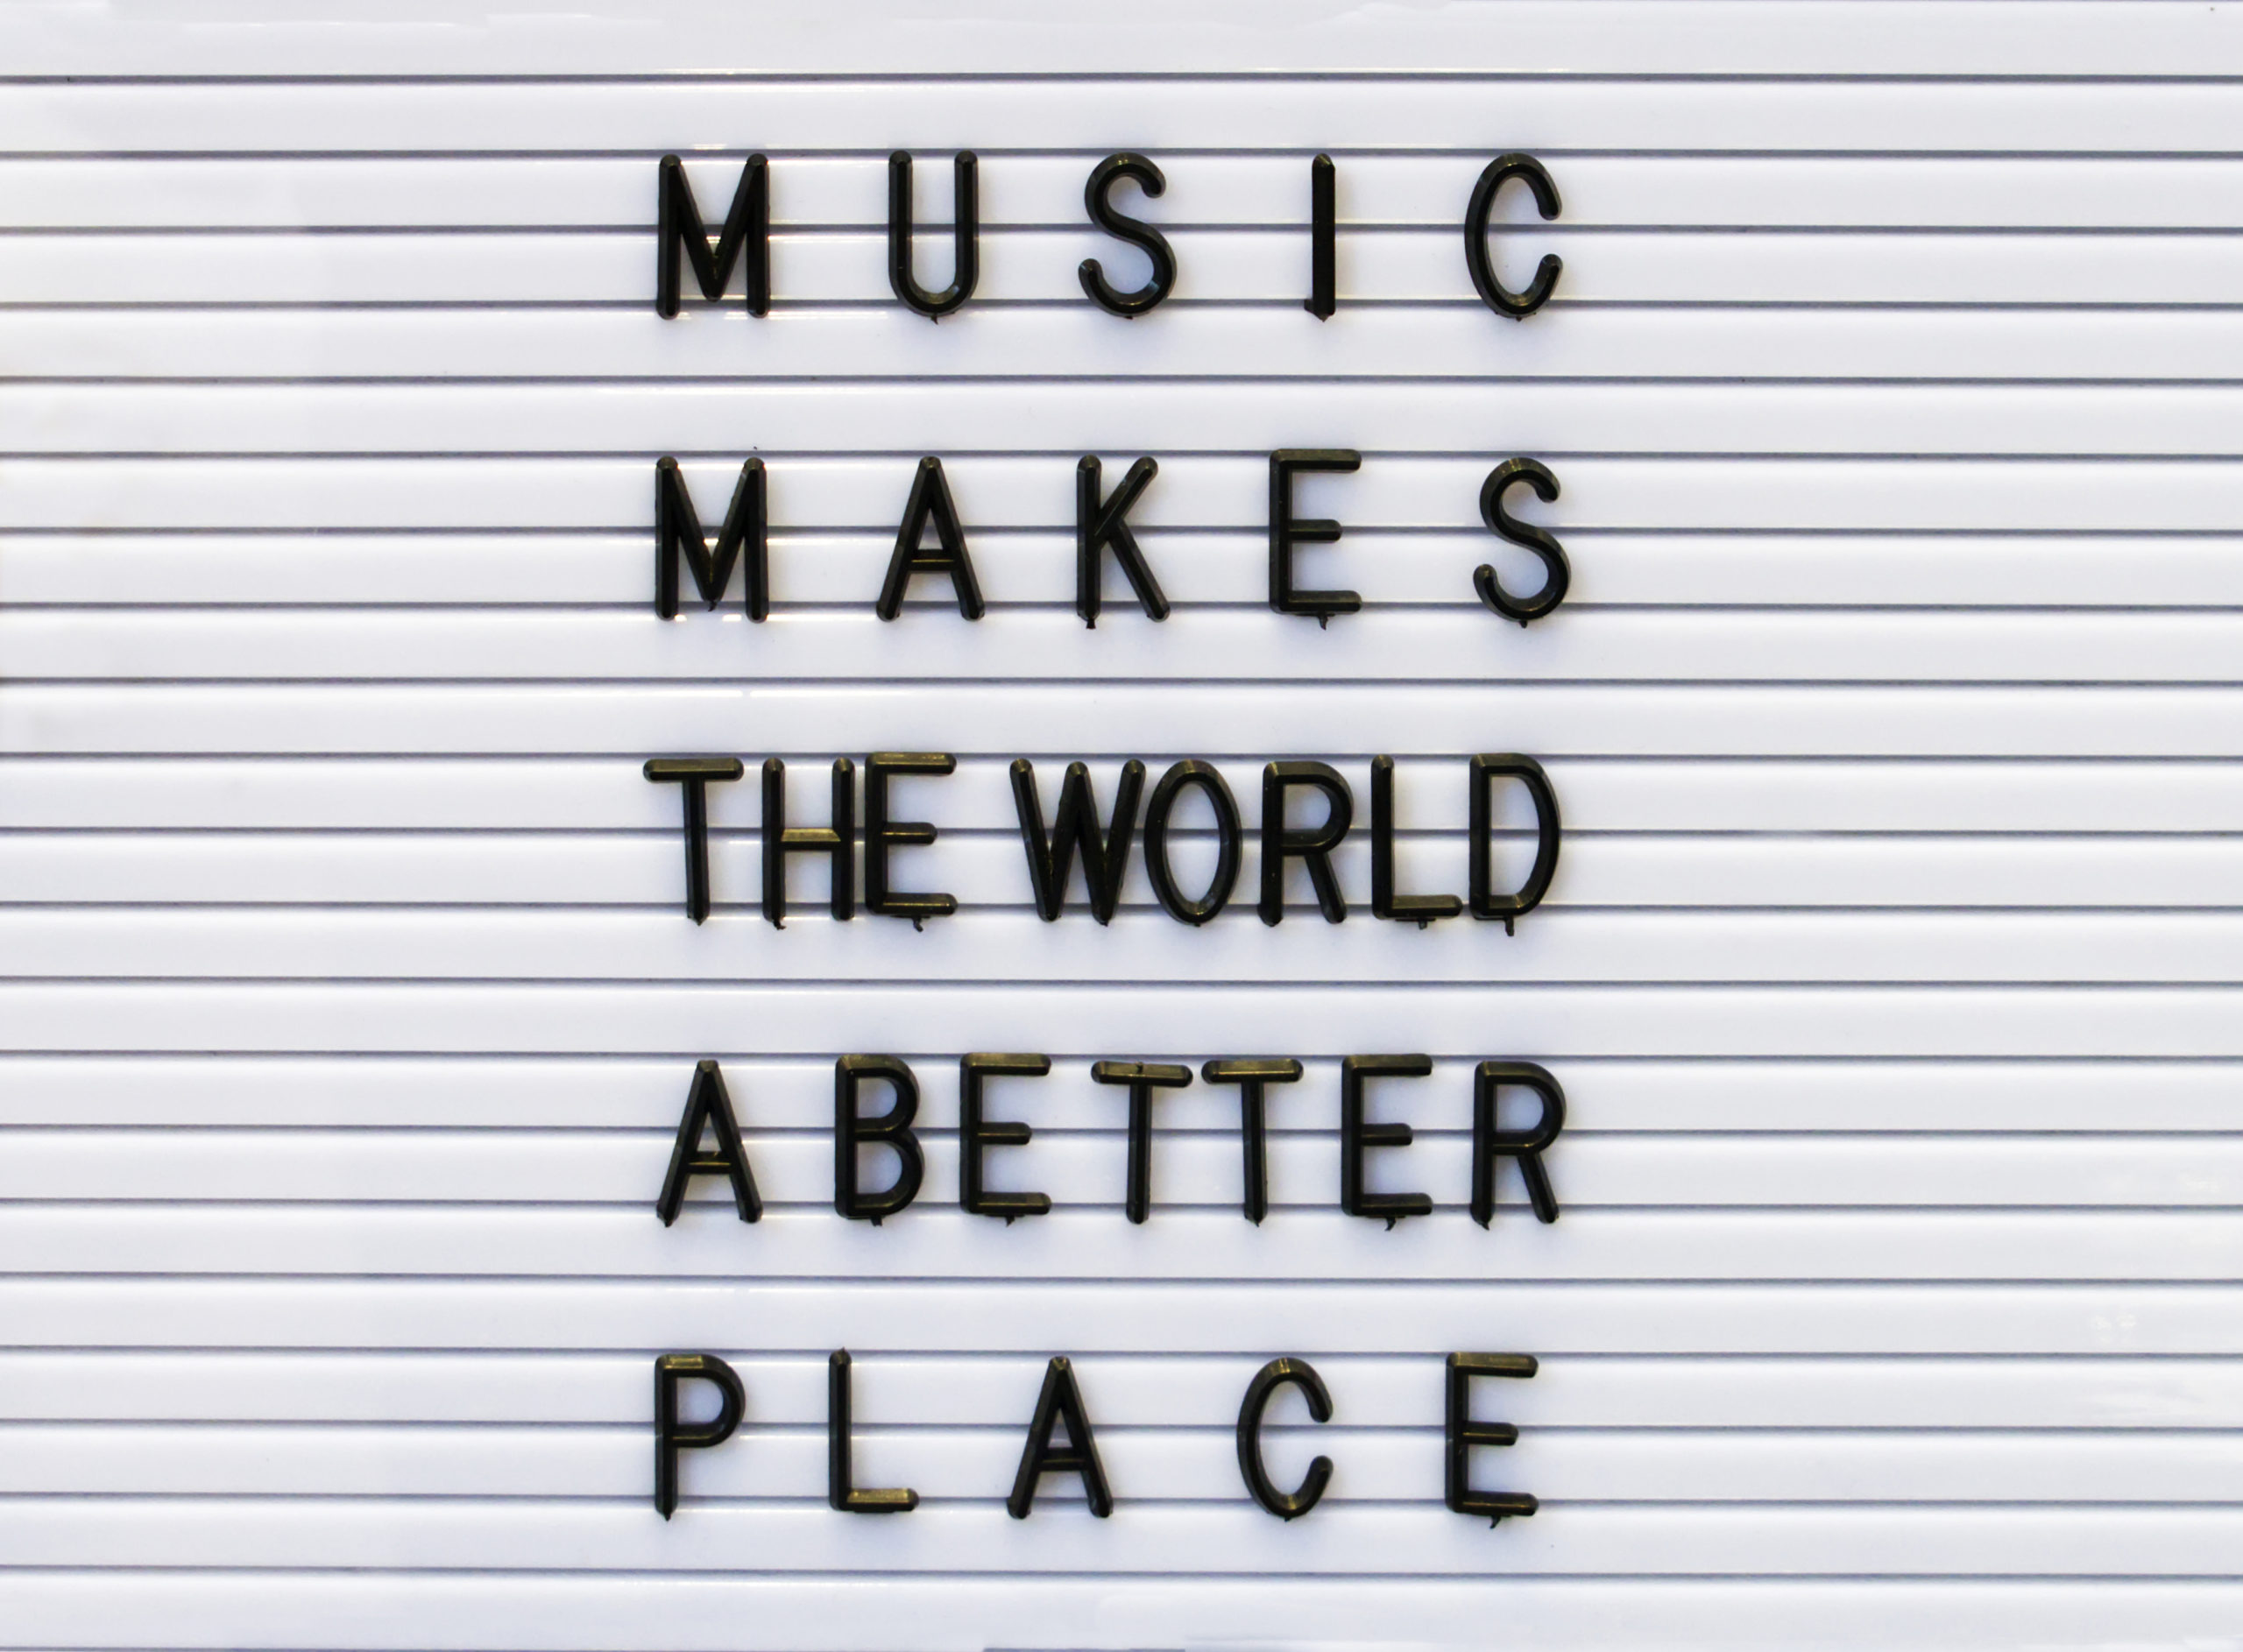 Music makes the world a better place concept made by plastic let